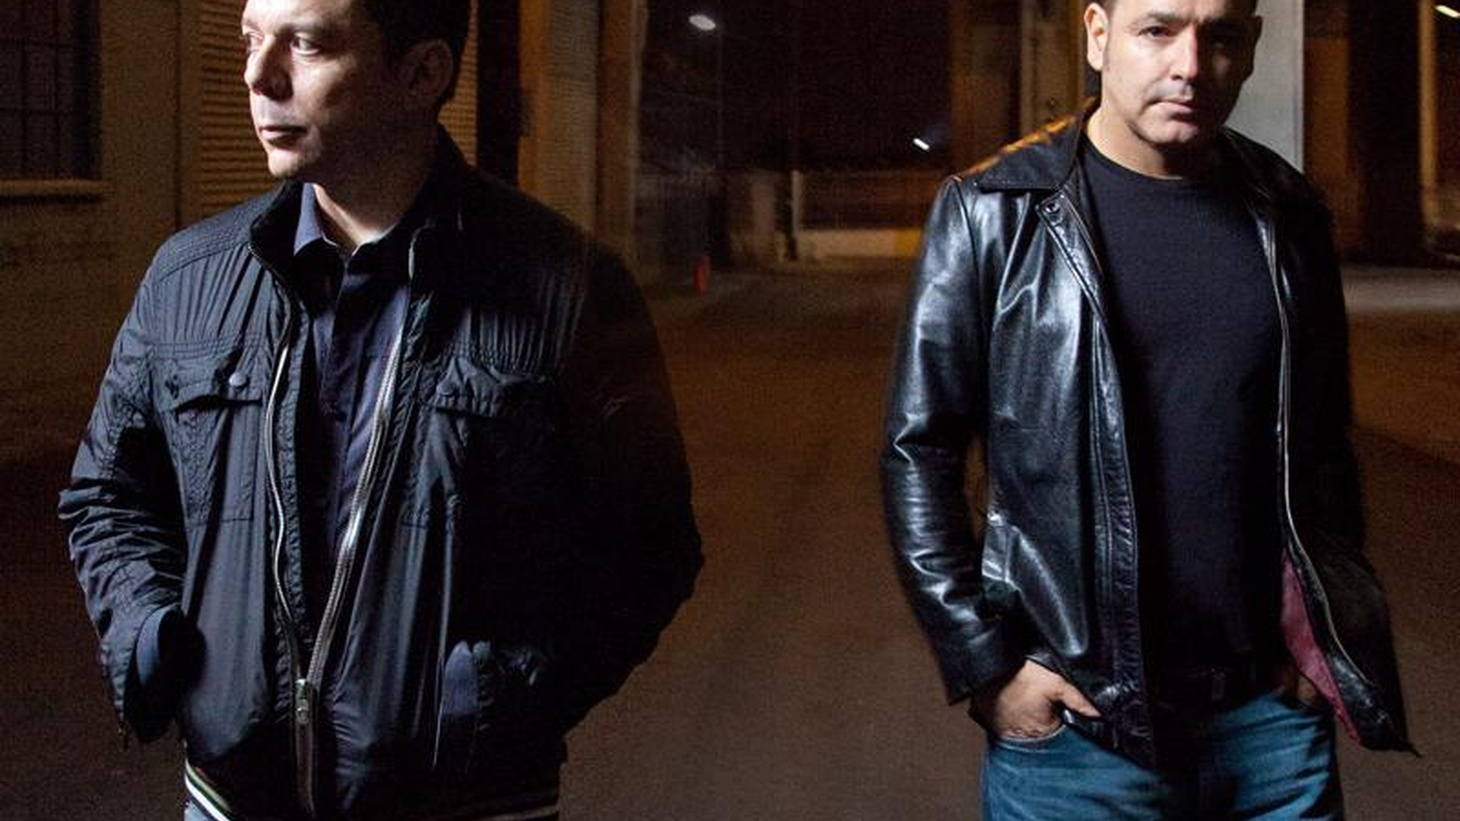 The Crystal Method celebrate their 20th anniversary with an album that features live instrumentation and powerful vocalists.